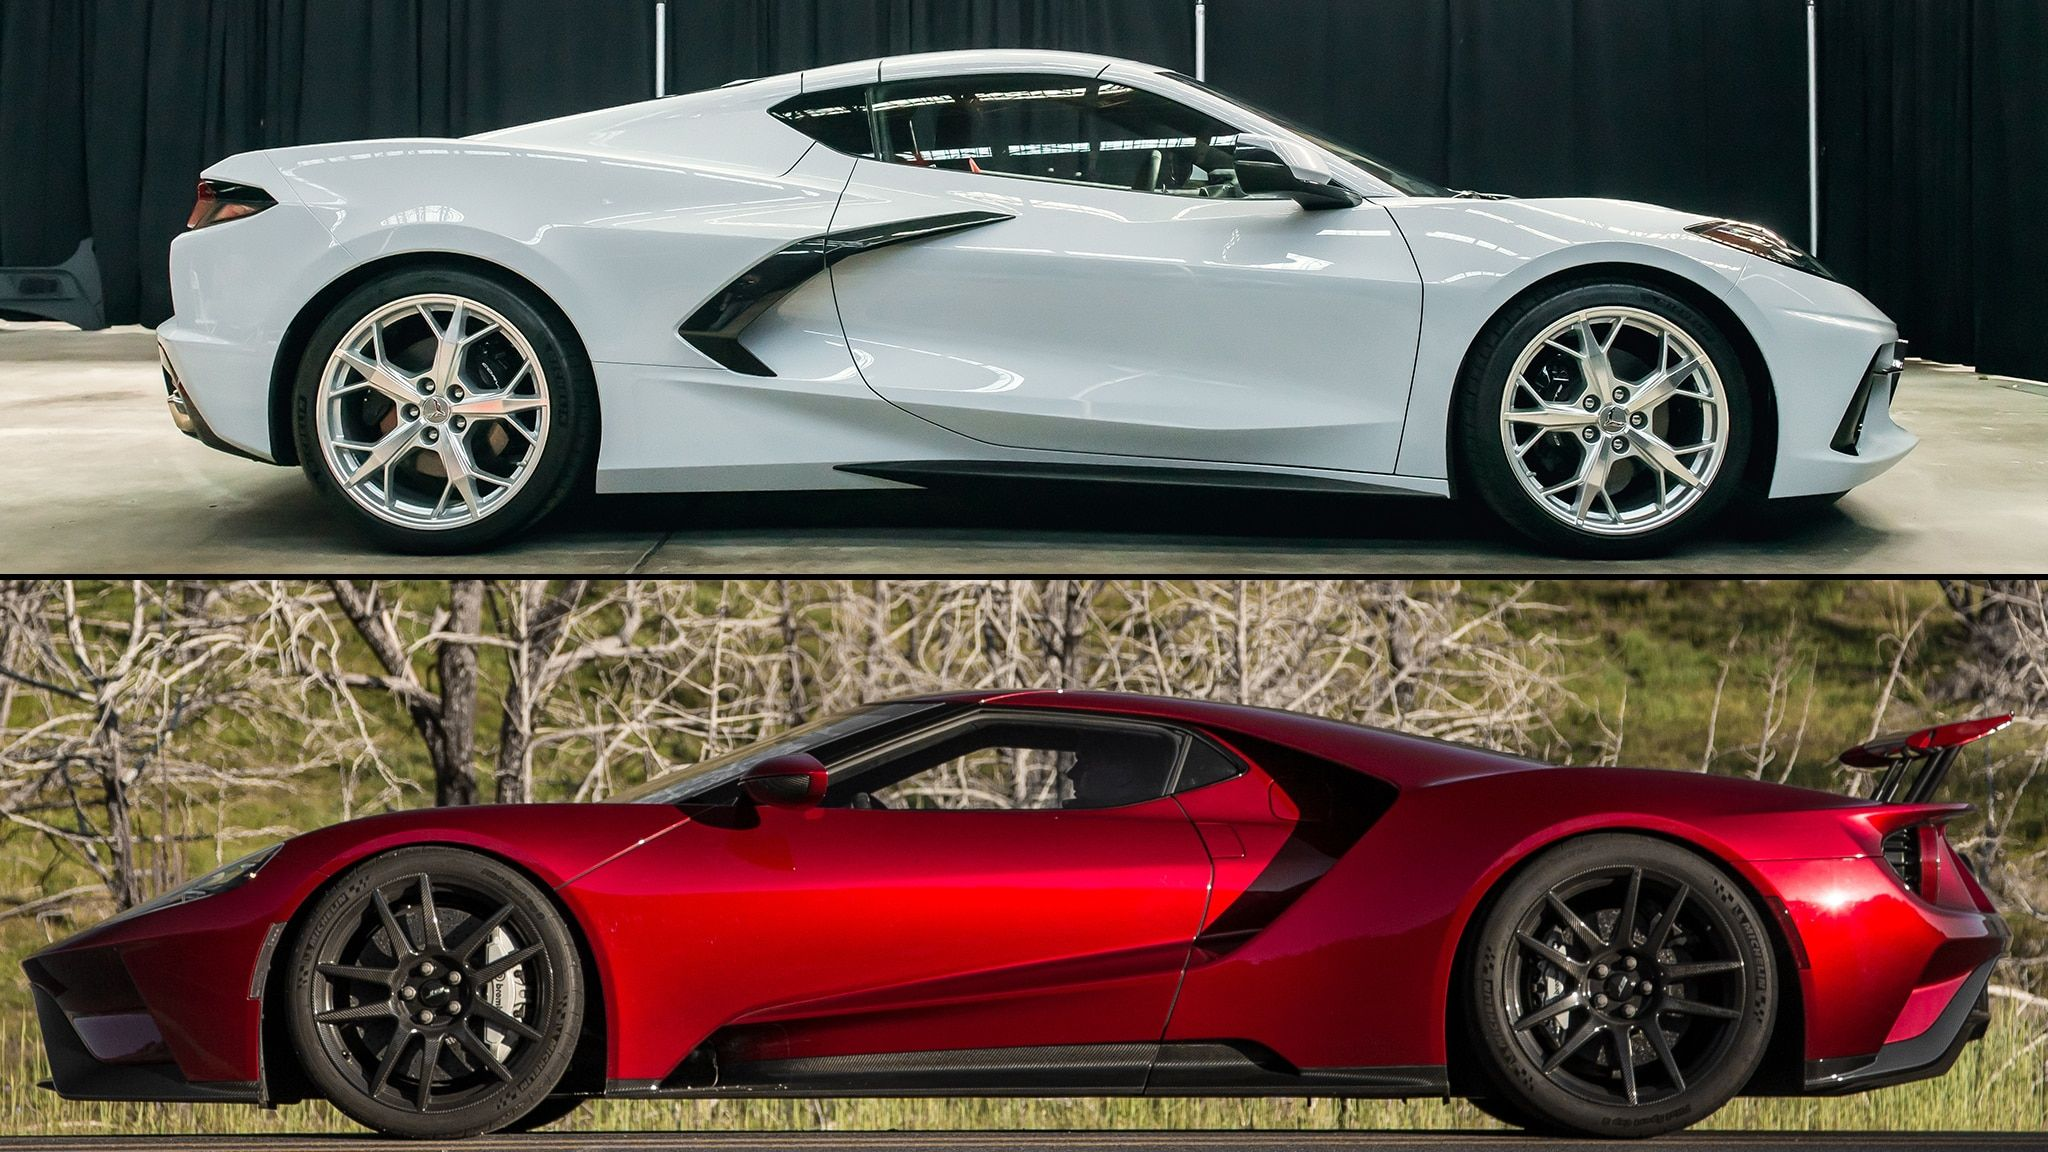 2020 Corvette Stingray Changes In 2020 Ford Gt Chevrolet